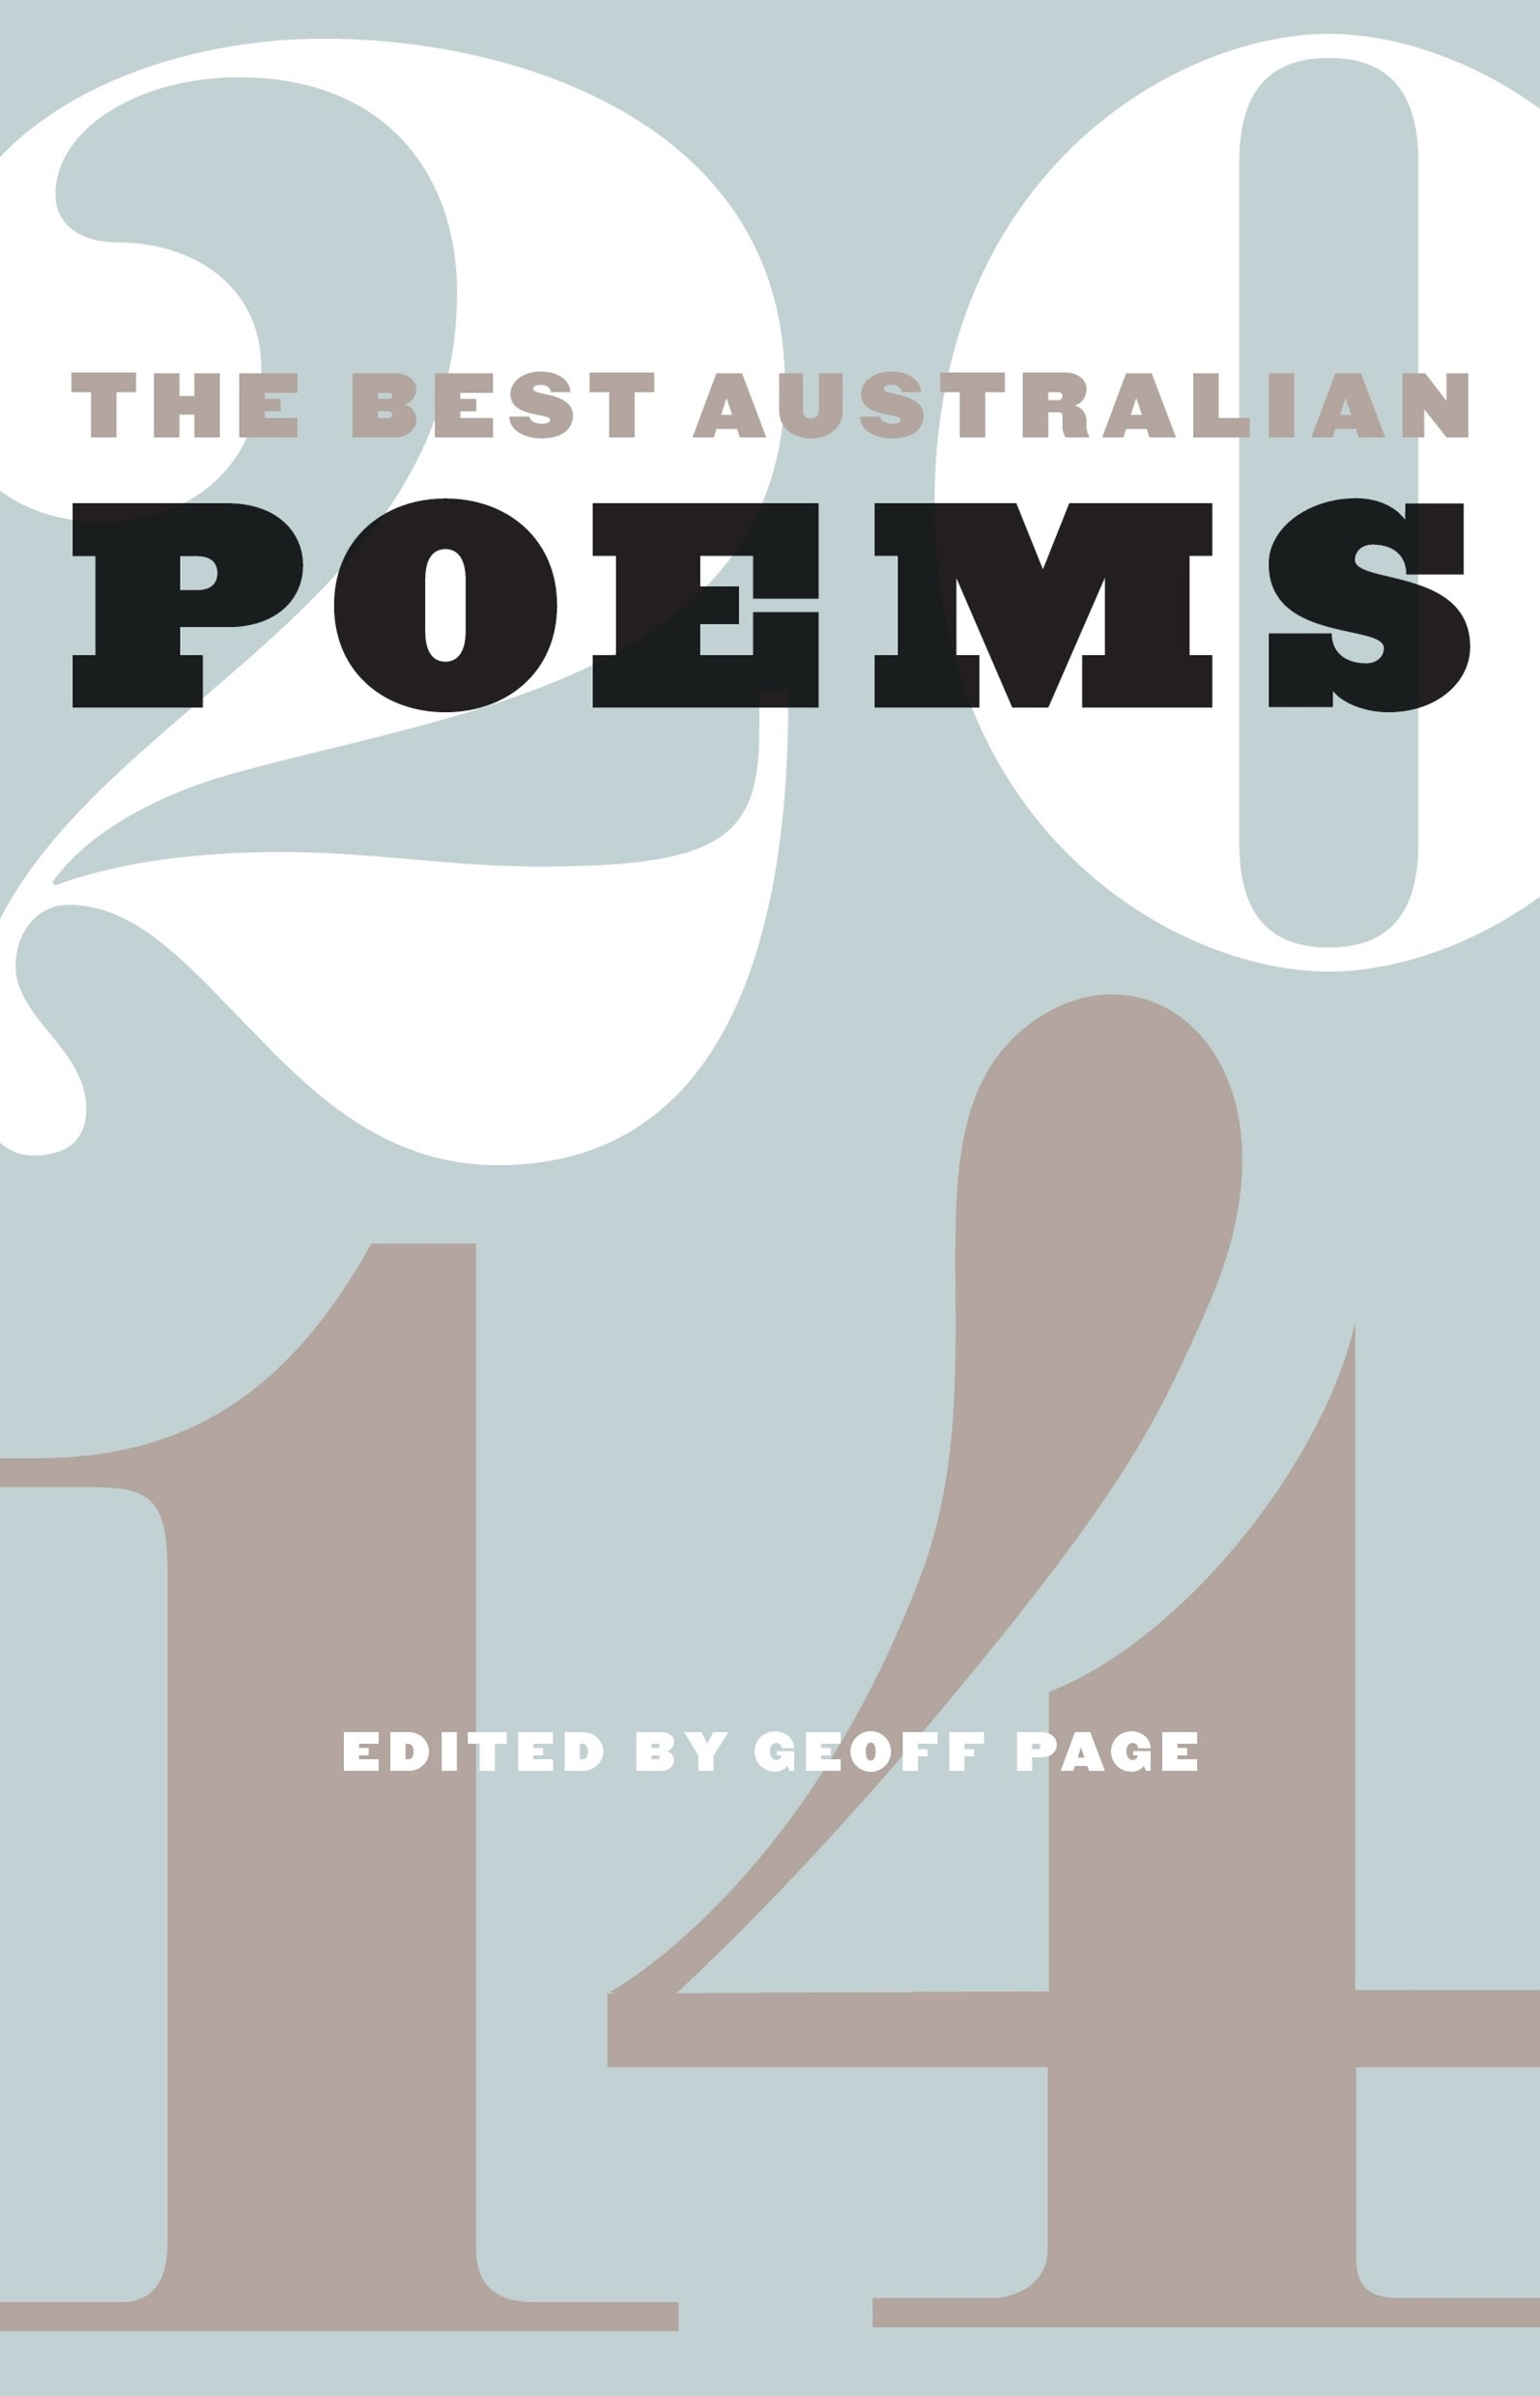 Best Australian Poems 2014